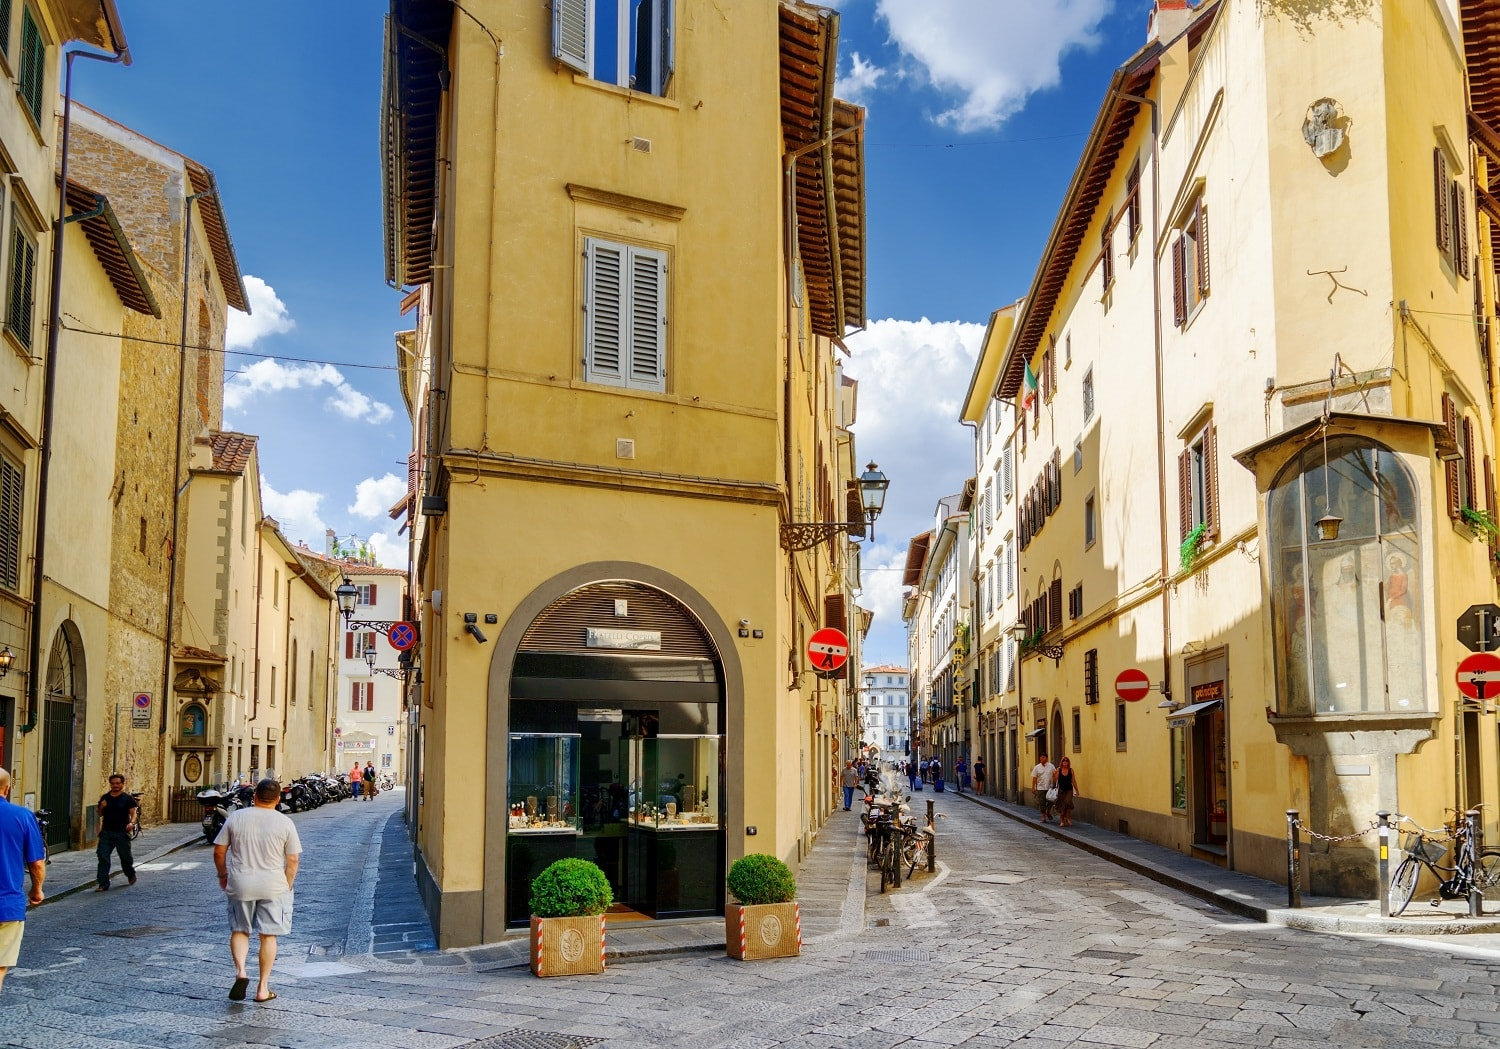 Crossroad-of-the-Via-della-Spada-and-the-Via-del-Sole-in-Florence